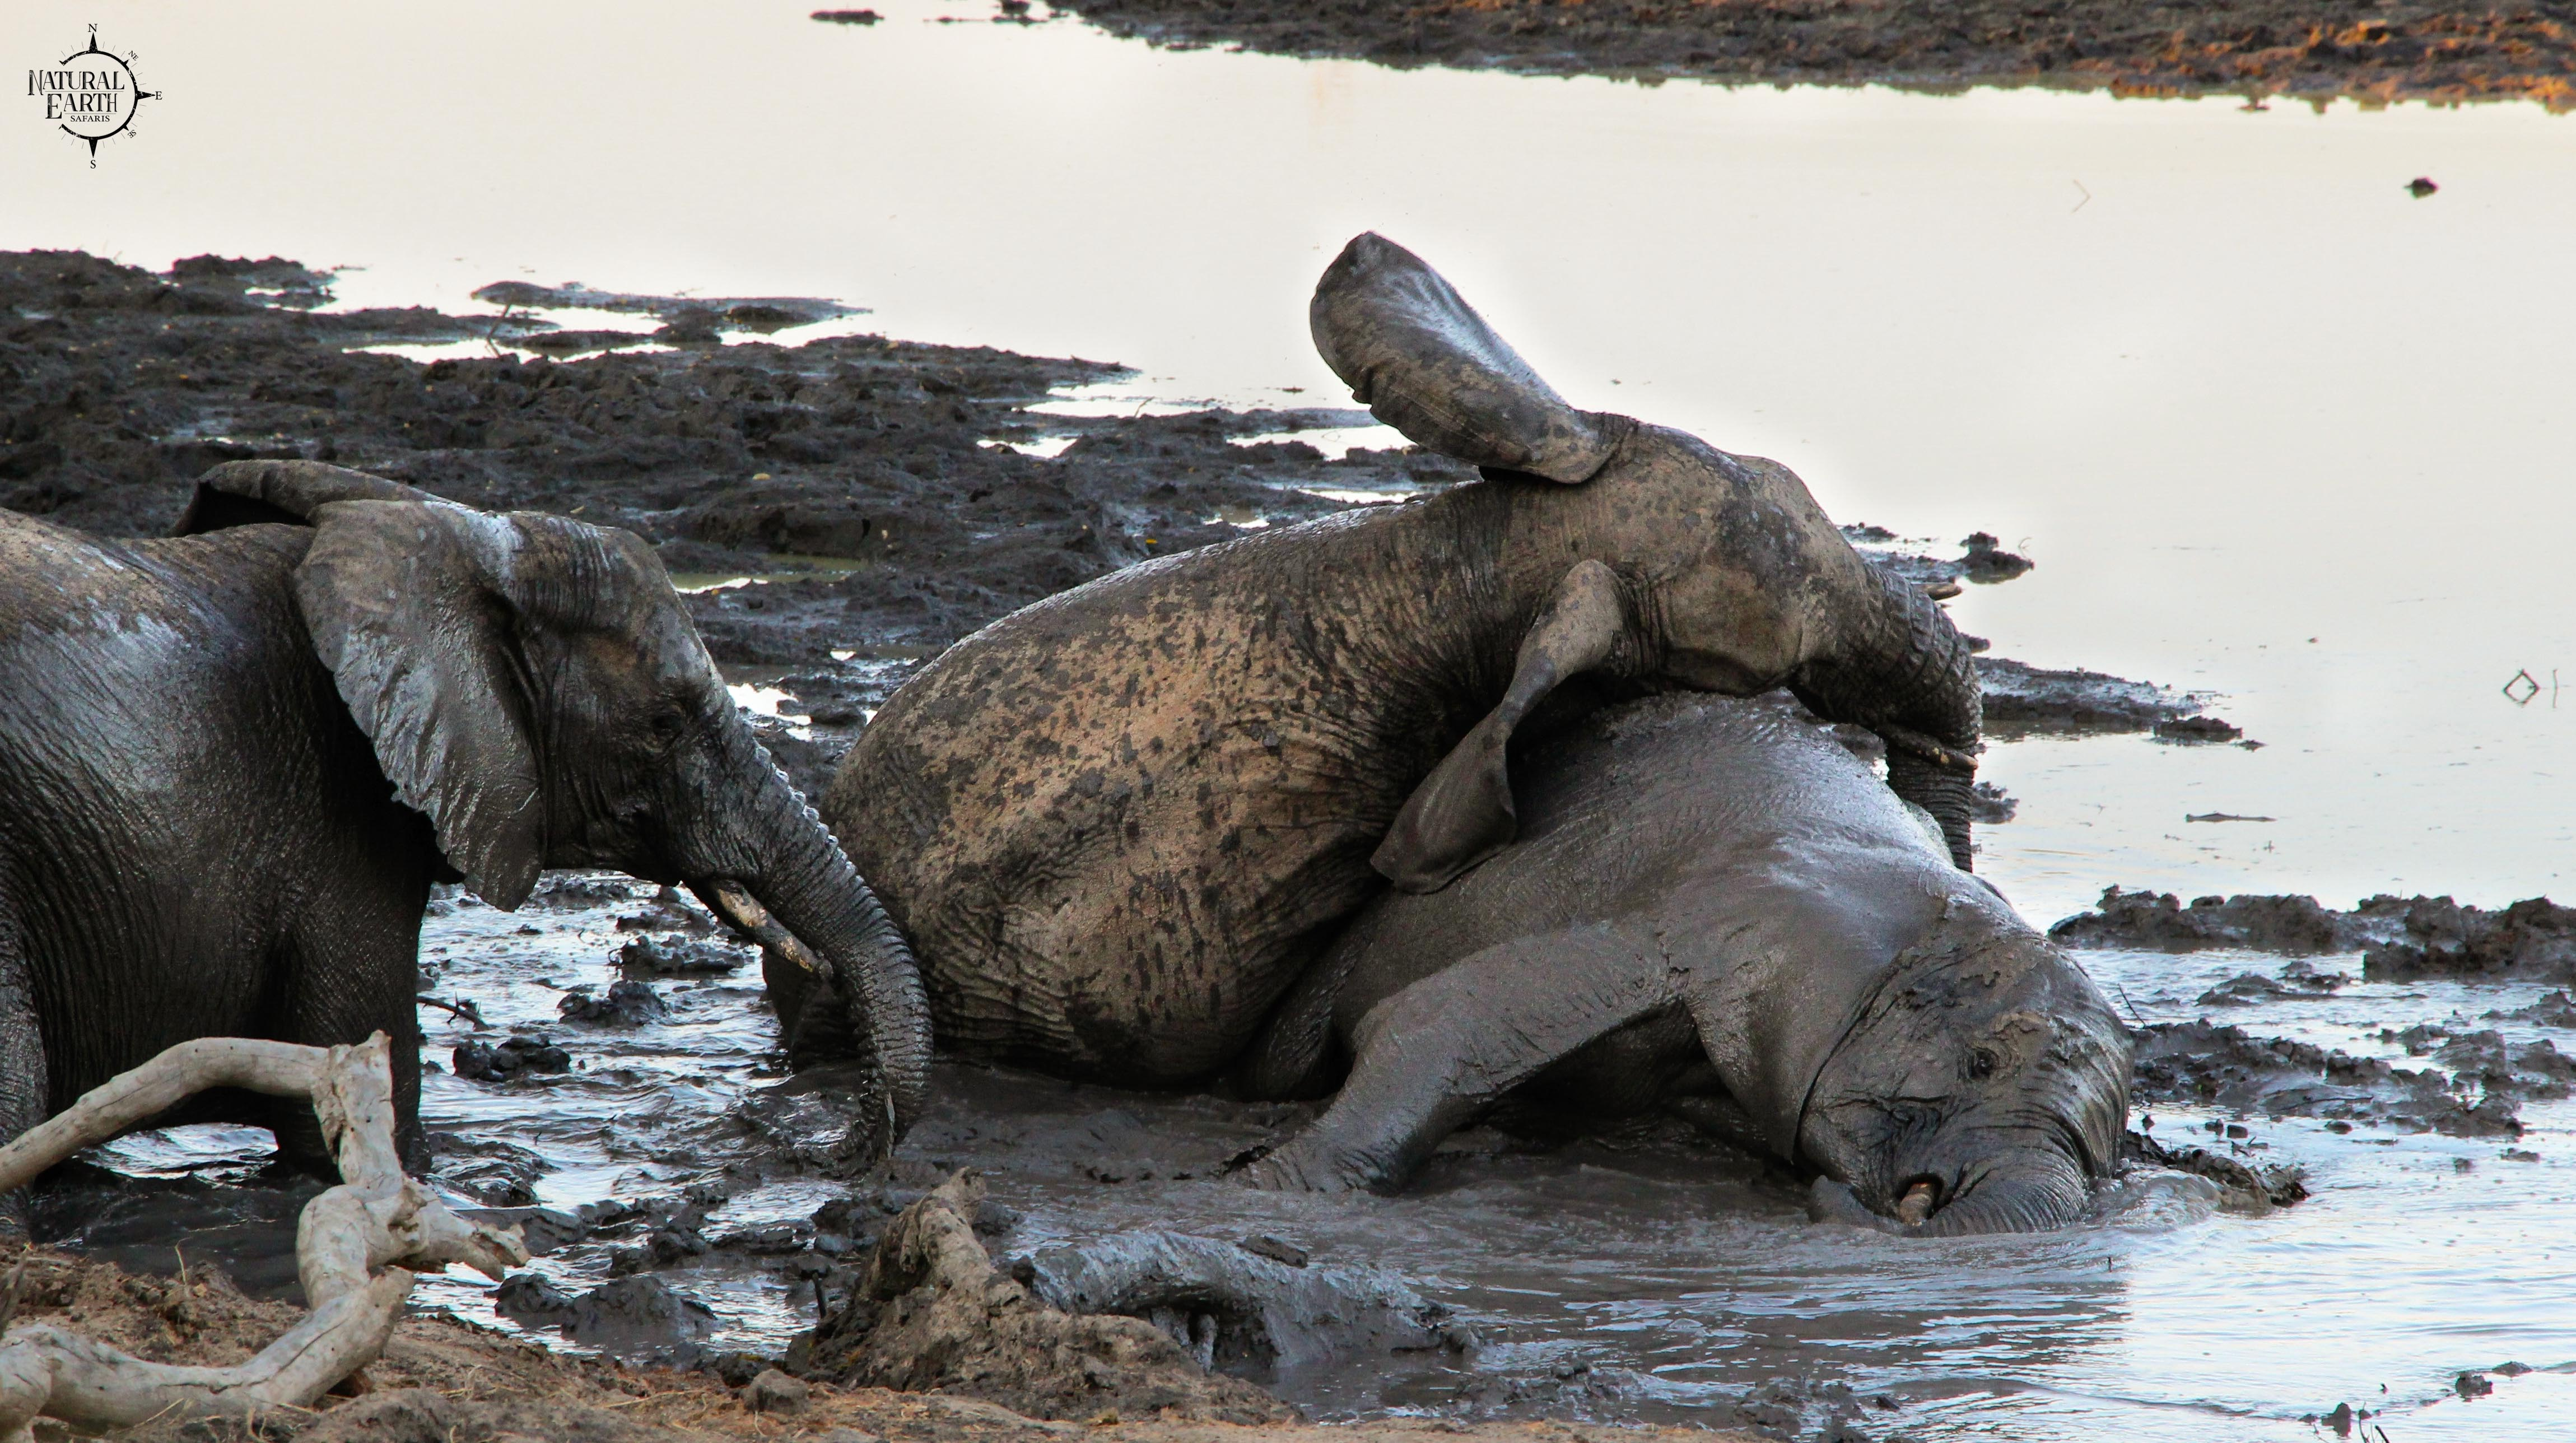 Elephant playing in the mud